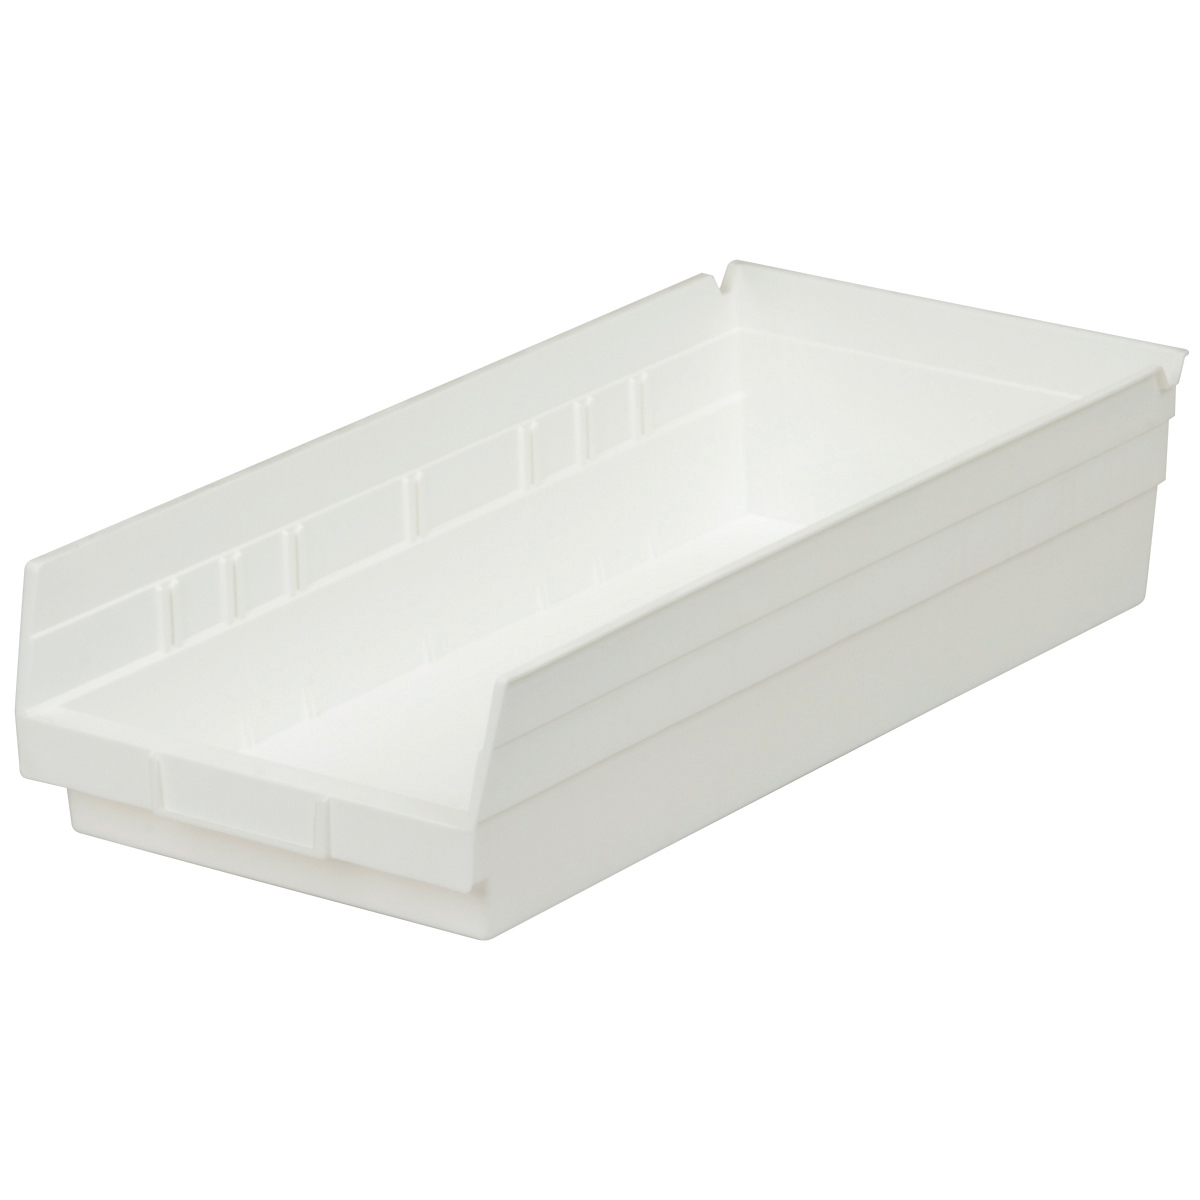 Shelf Bin 17-7/8 x 8-3/8 x 4, White (30158WHITE).  This item sold in carton quantities of 12.